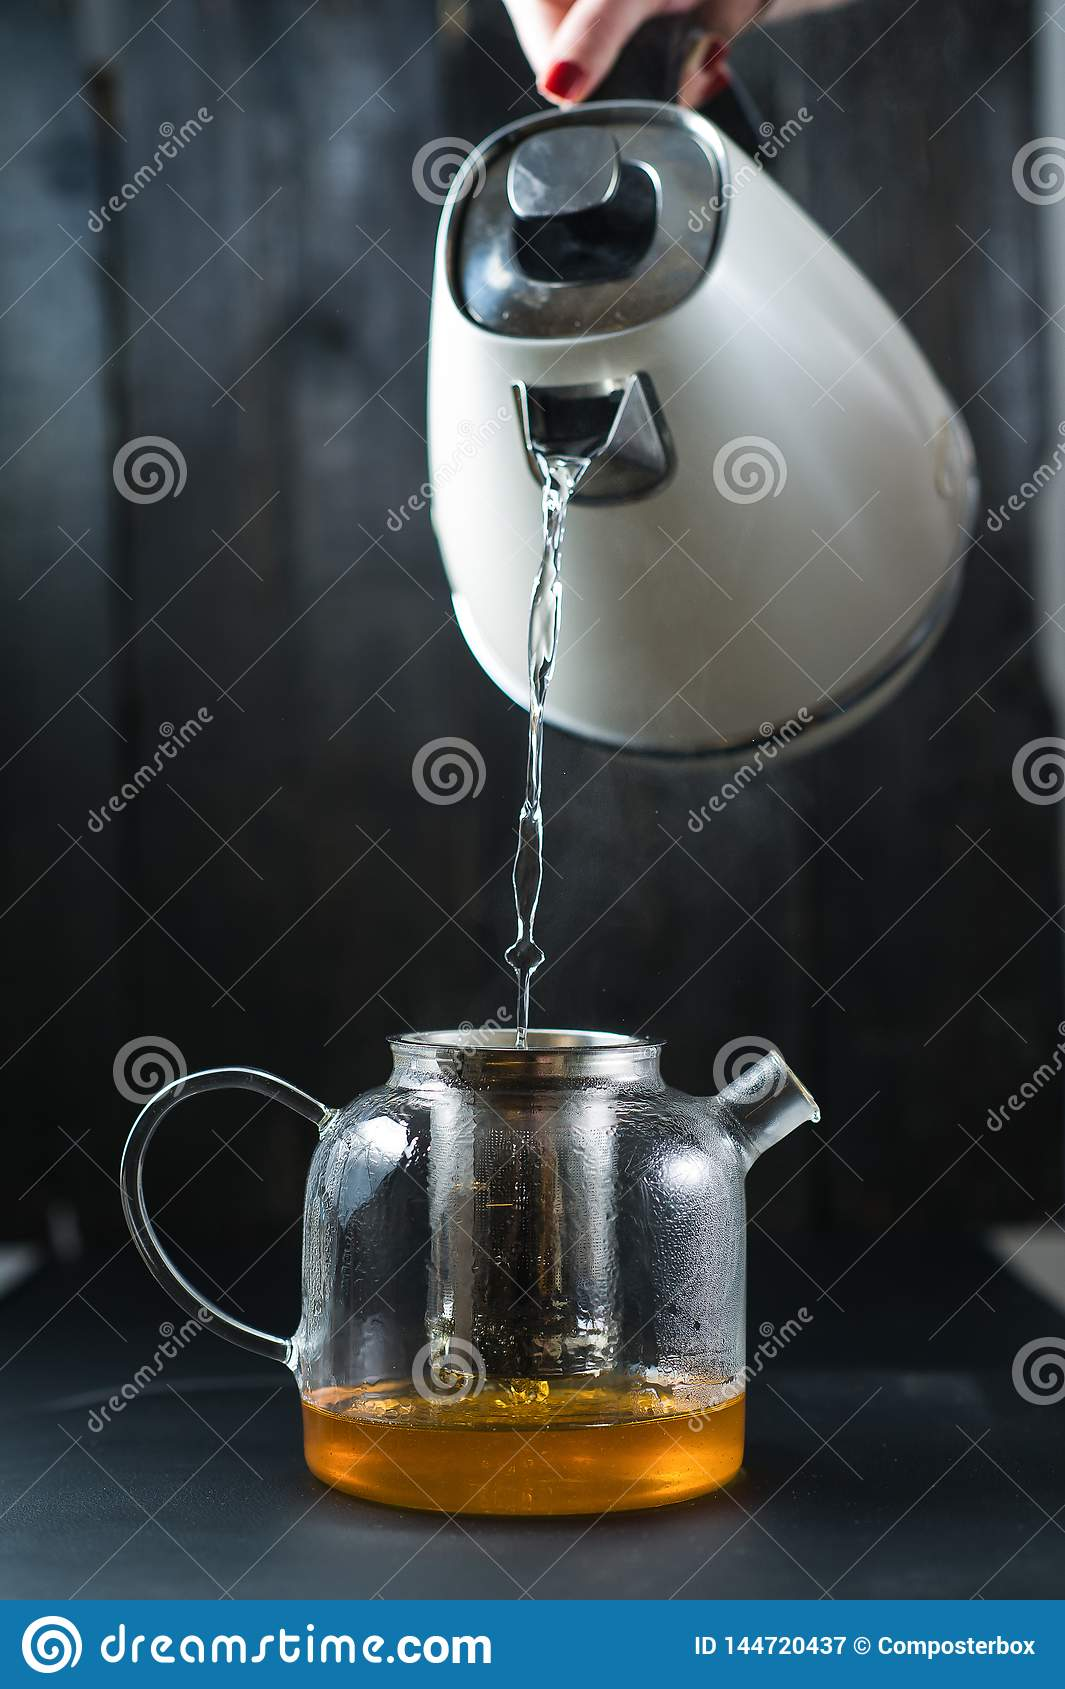 The girl pours water into the teapot.